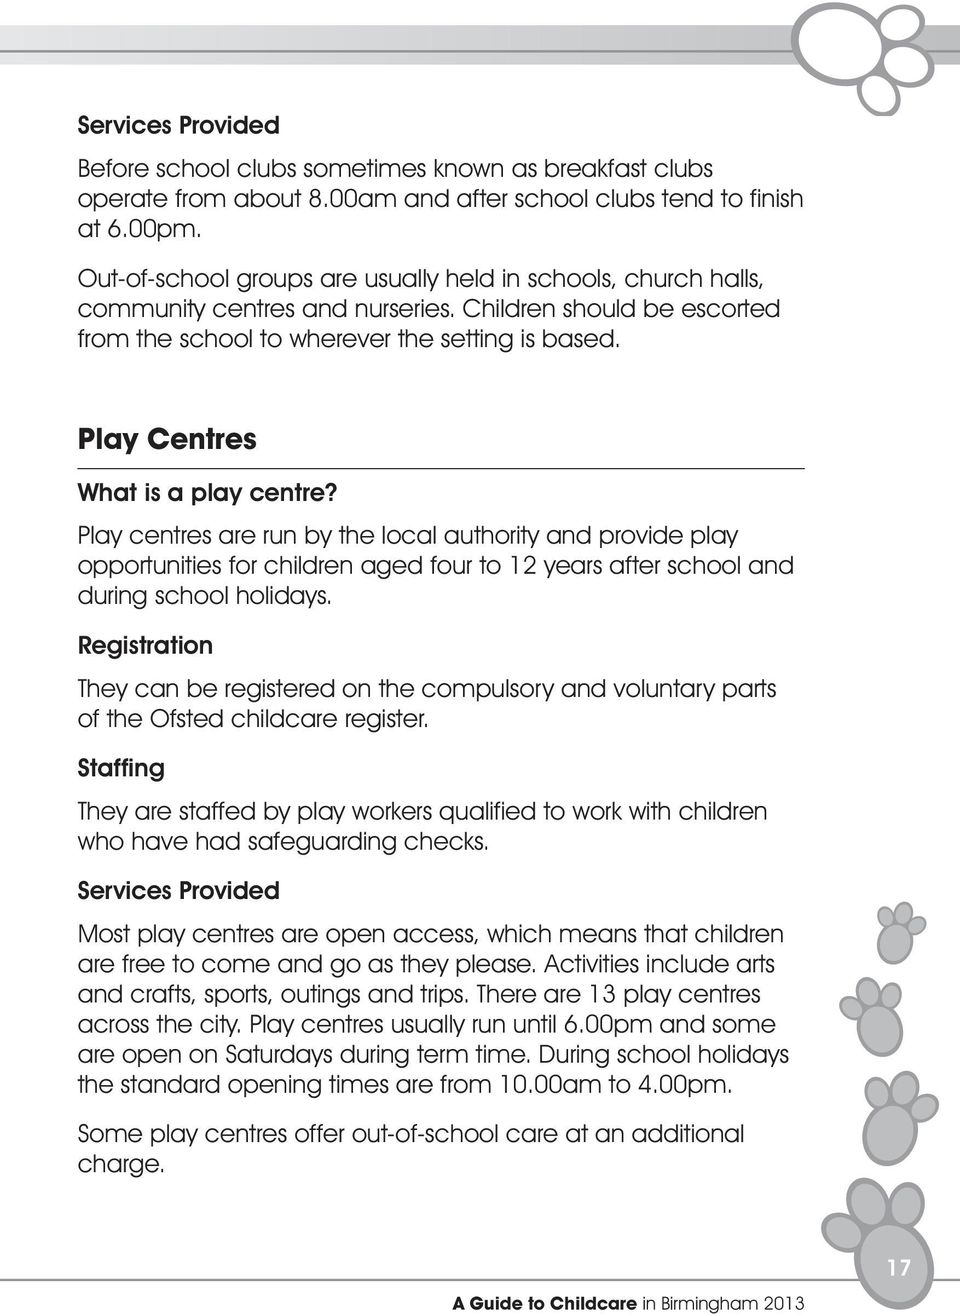 Play Centres What is a play centre? Play centres are run by the local authority and provide play opportunities for children aged four to 12 years after school and during school holidays.